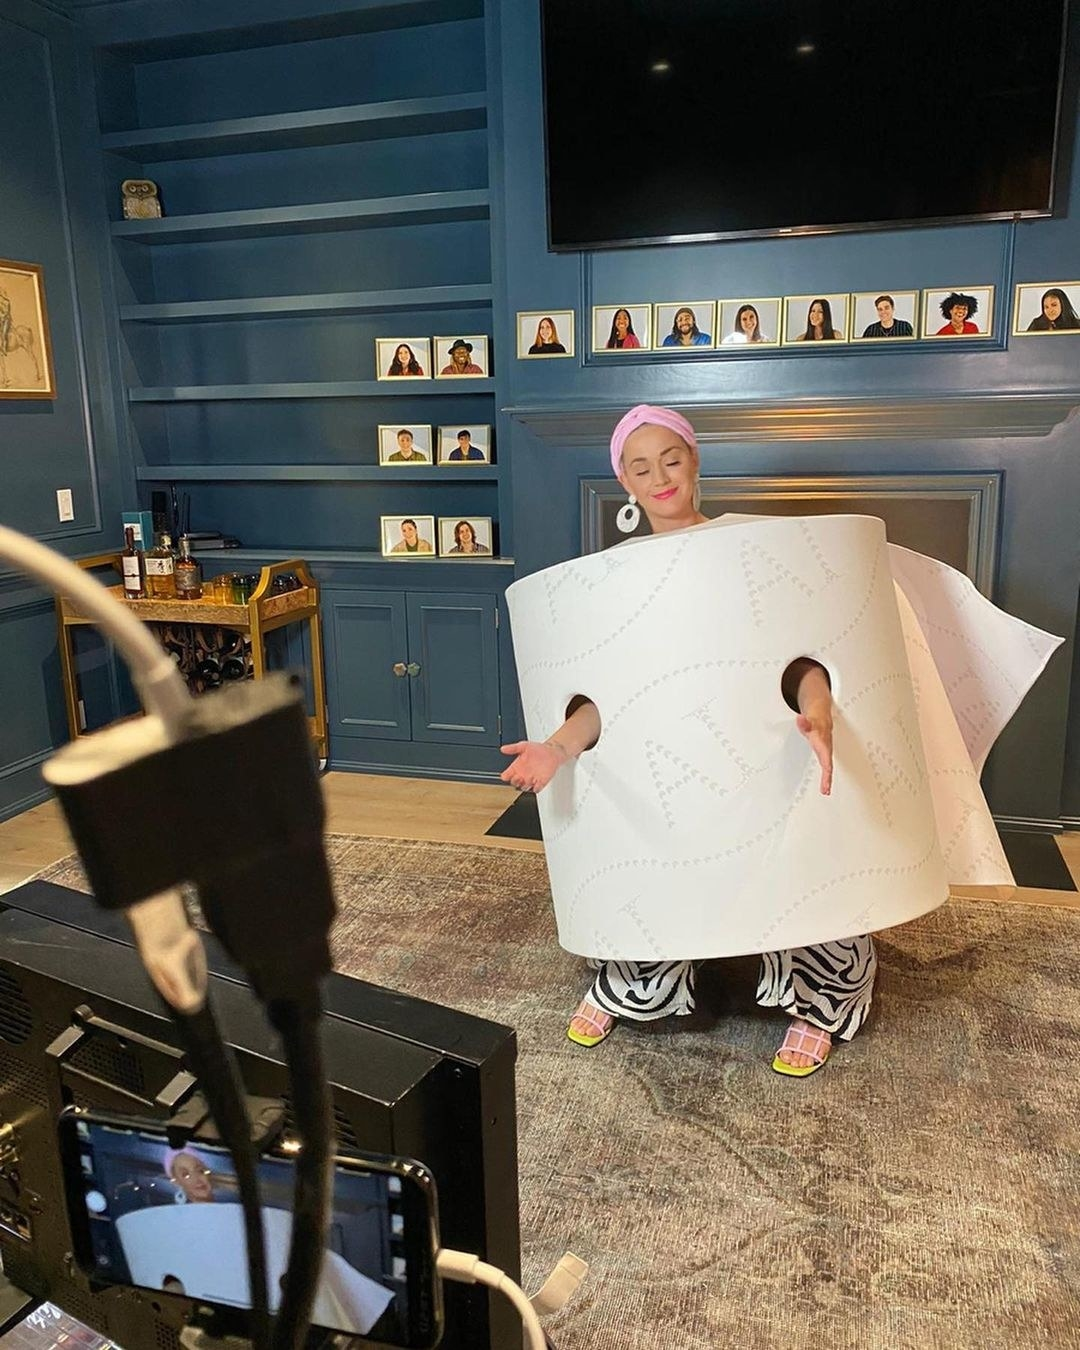 Katy posing in a toilet roll costume